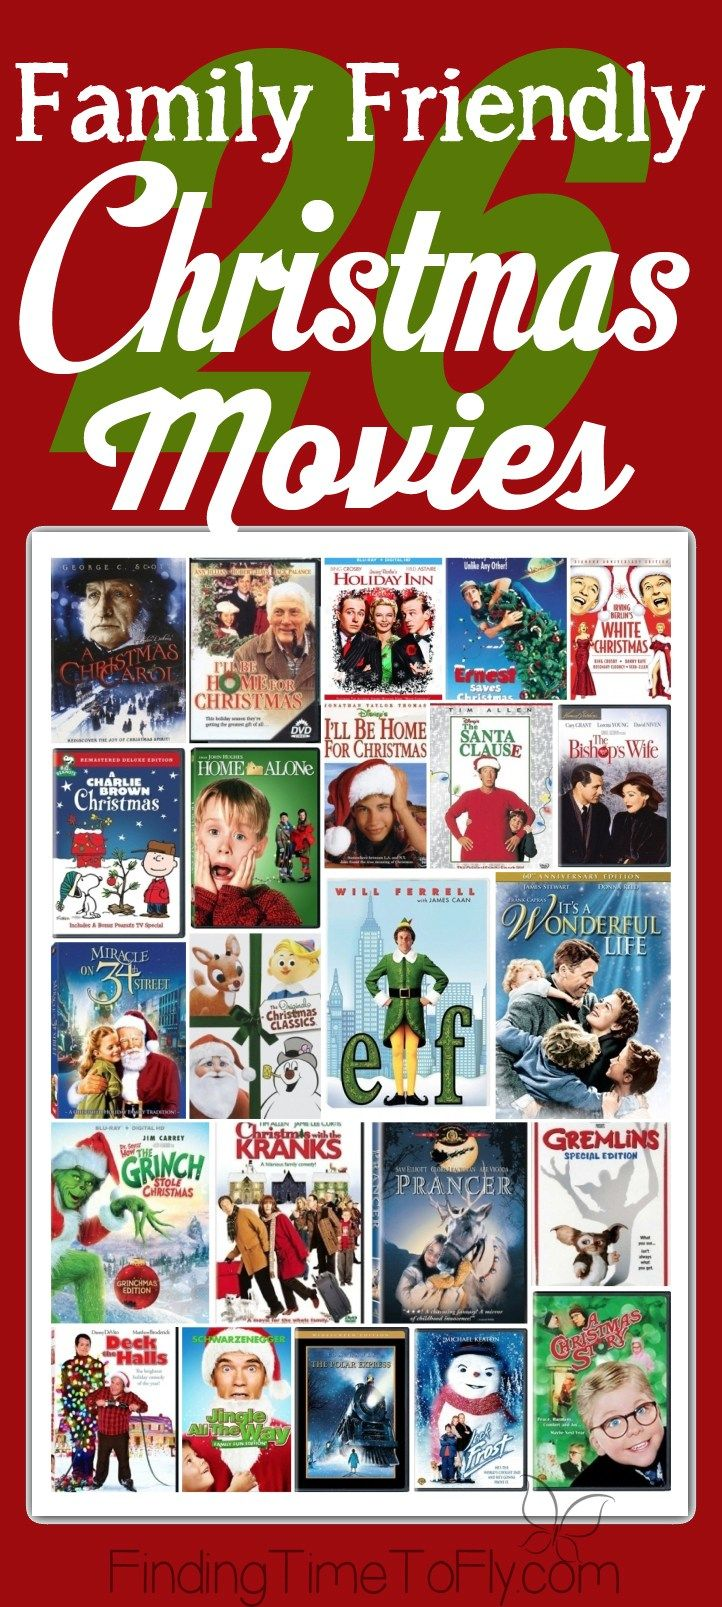 26 Family Friendly Christmas Movies | Christmas | Pinterest ...